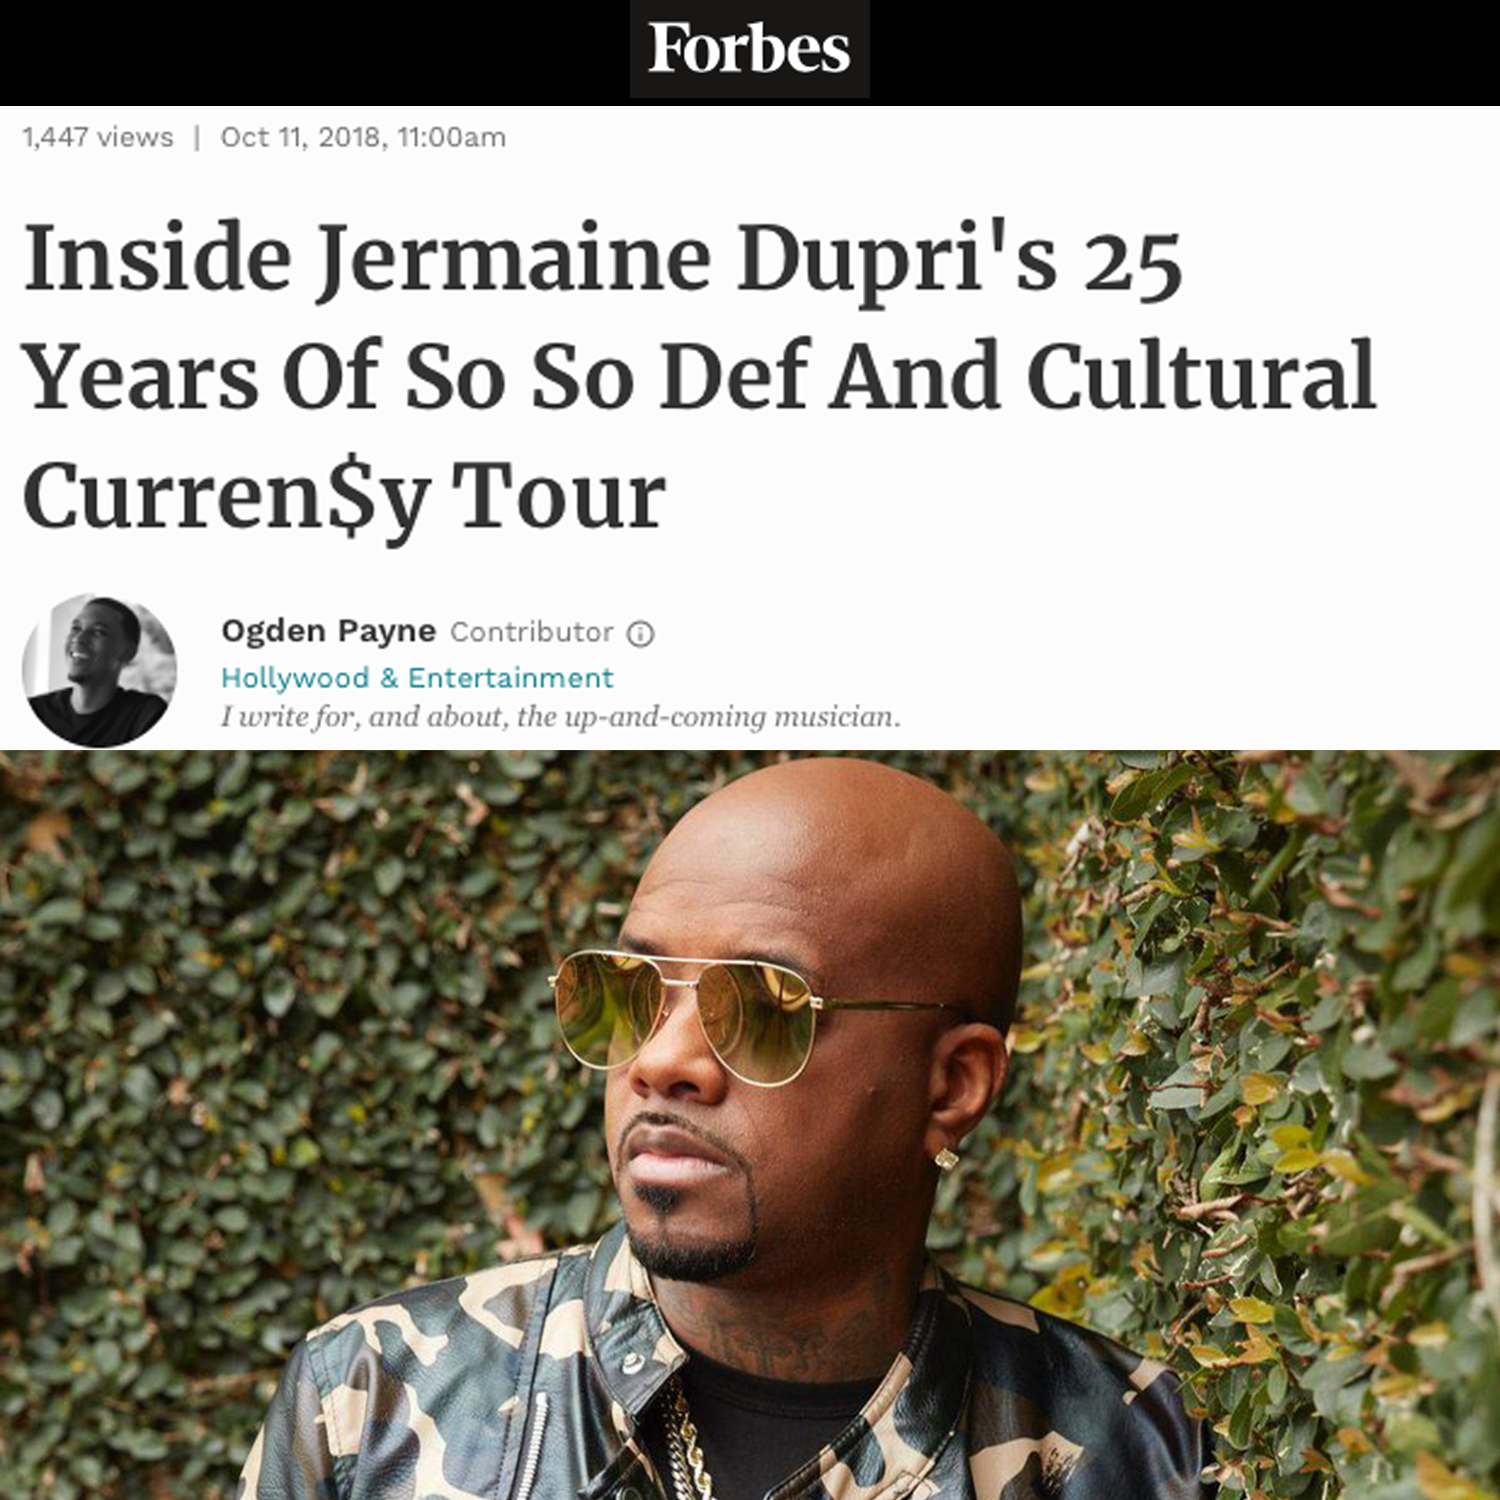 Jermaine Dupri and So So Def on Forbes